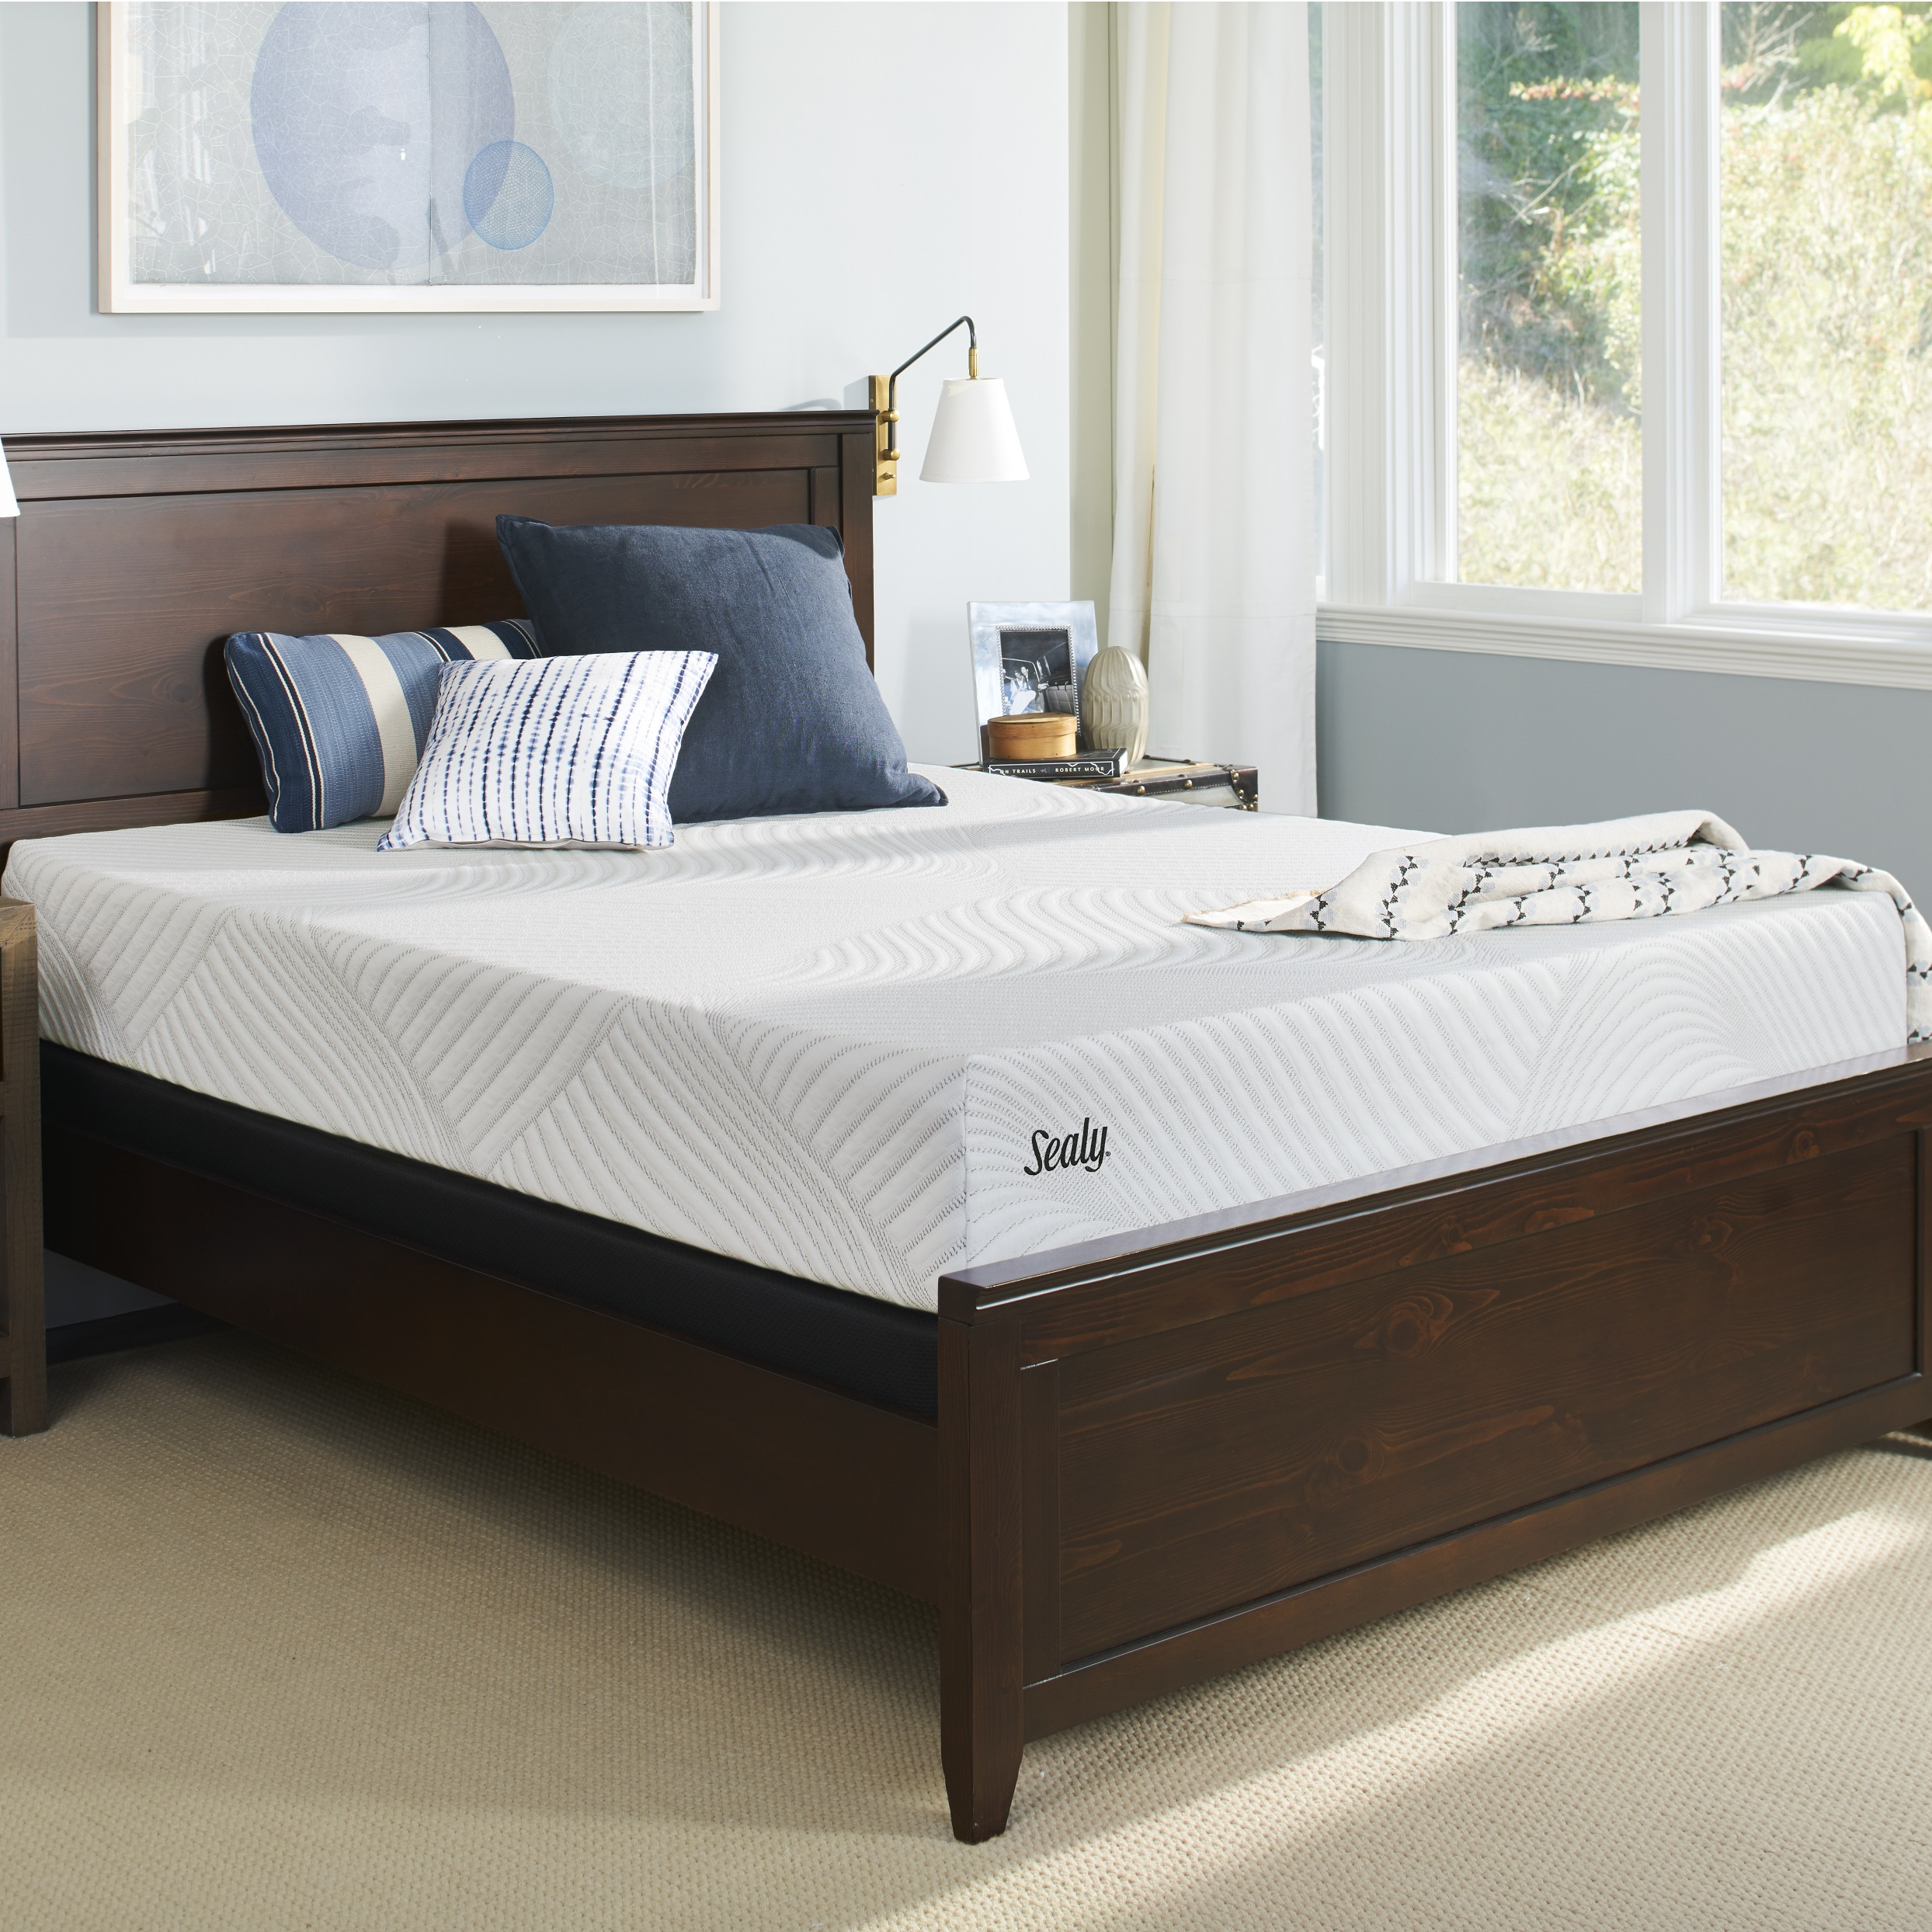 """Sealy Conform Essentials 9.5"""" Firm Mattress with High Profile Foundation Set by Sealy"""